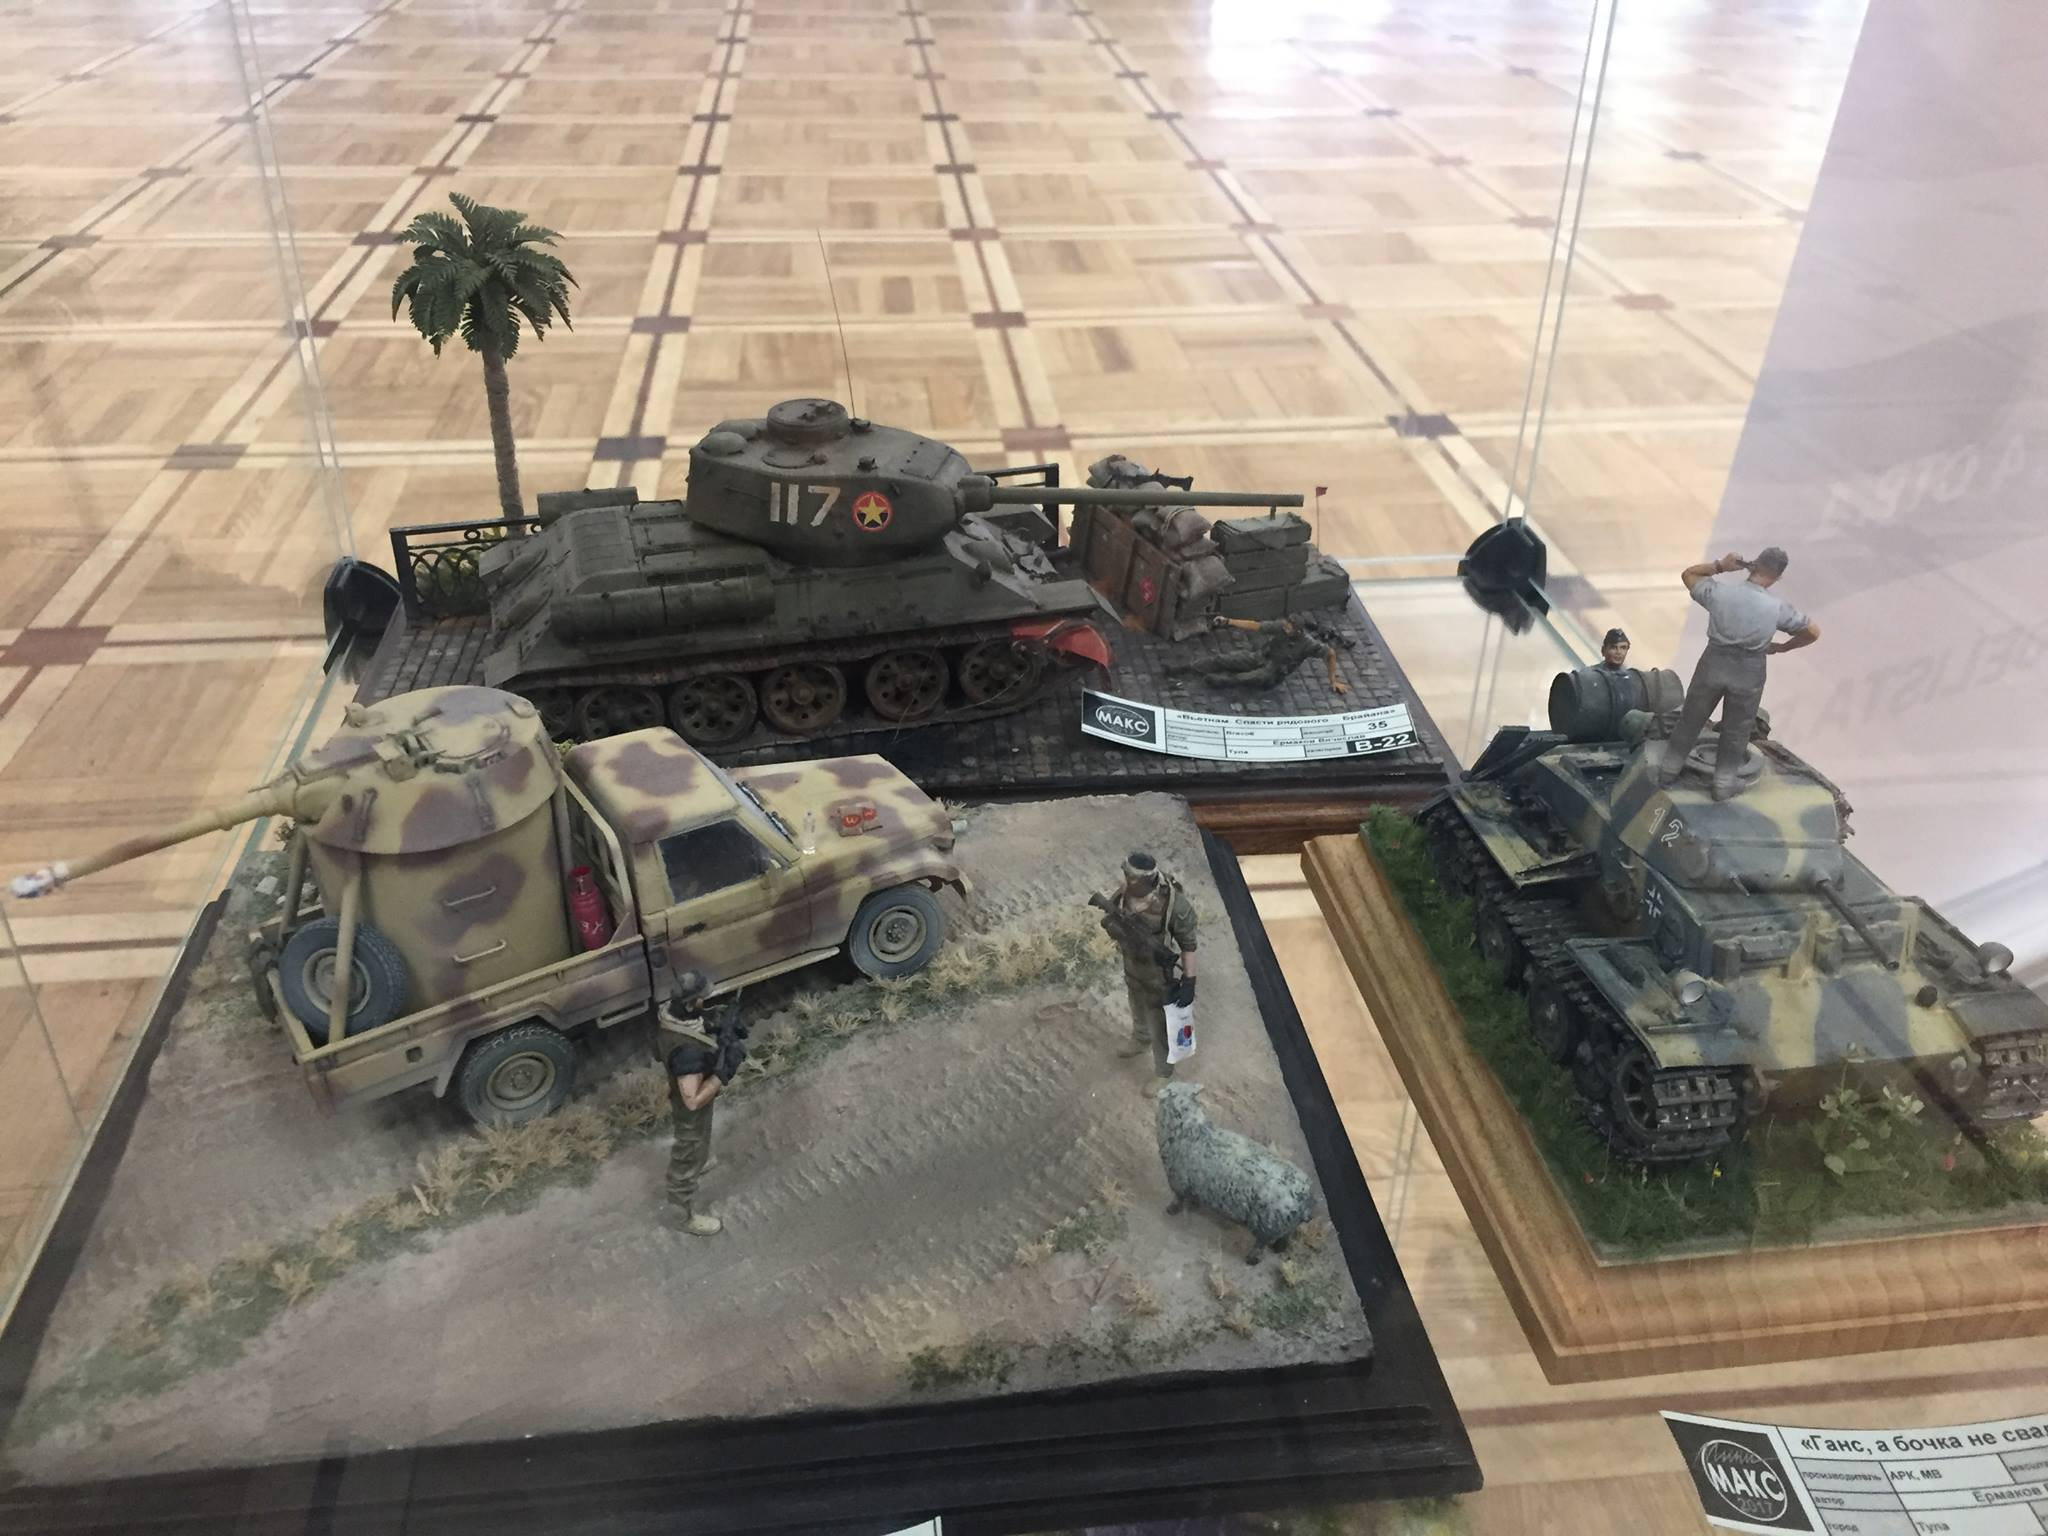 Military scale modeling: News, sites, discussion 4353912_original